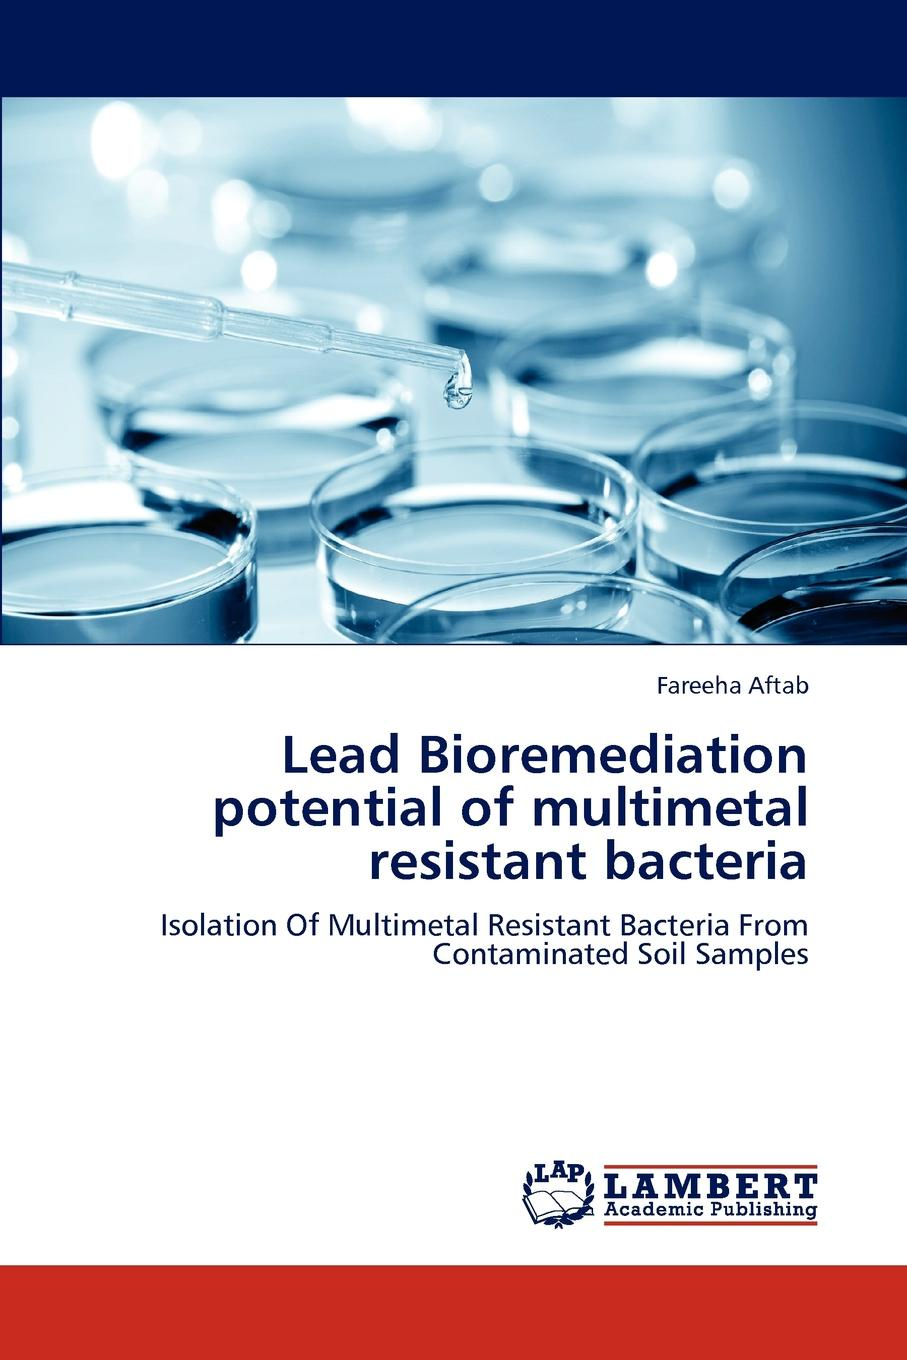 Fareeha Aftab Lead Bioremediation potential of multimetal resistant bacteria bioavailability and solubility equilibria of heavy metals in soils